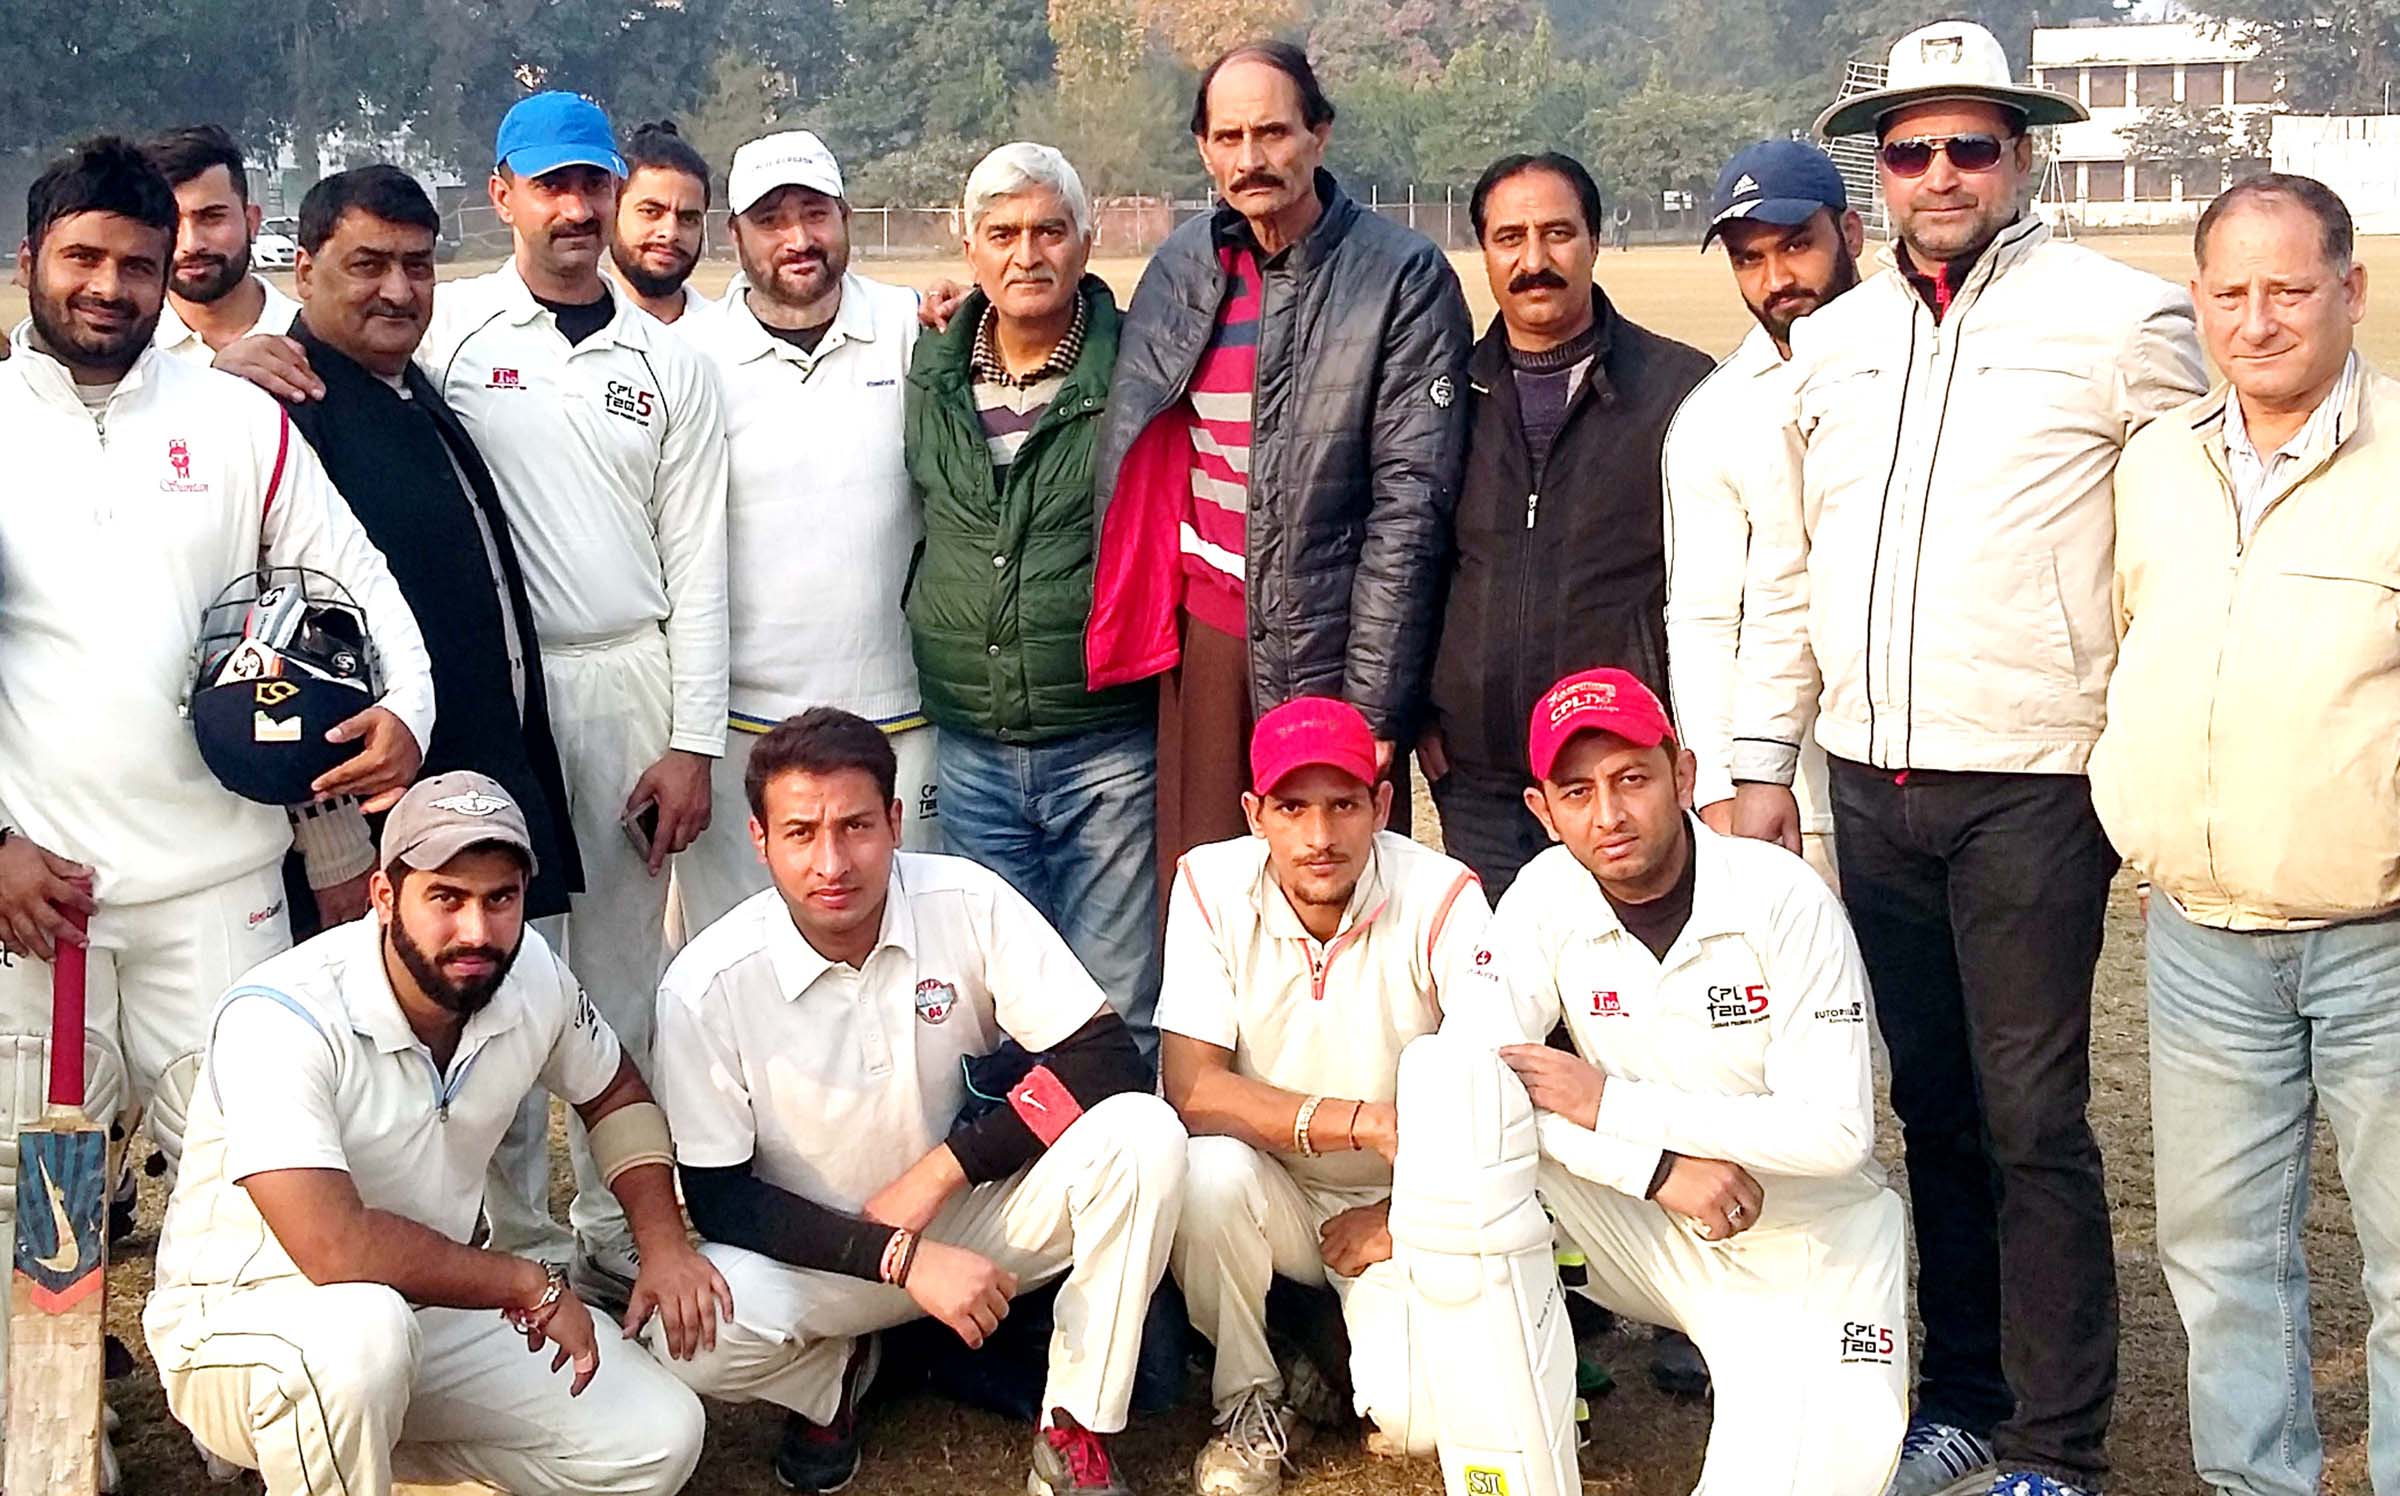 Winners Chinar Cricket Club Delhi posing alongwith chief guest Shiban Lal Trakroo, Joint Secretary JKCA Kashmir wing and other dignitaries on Saturday.